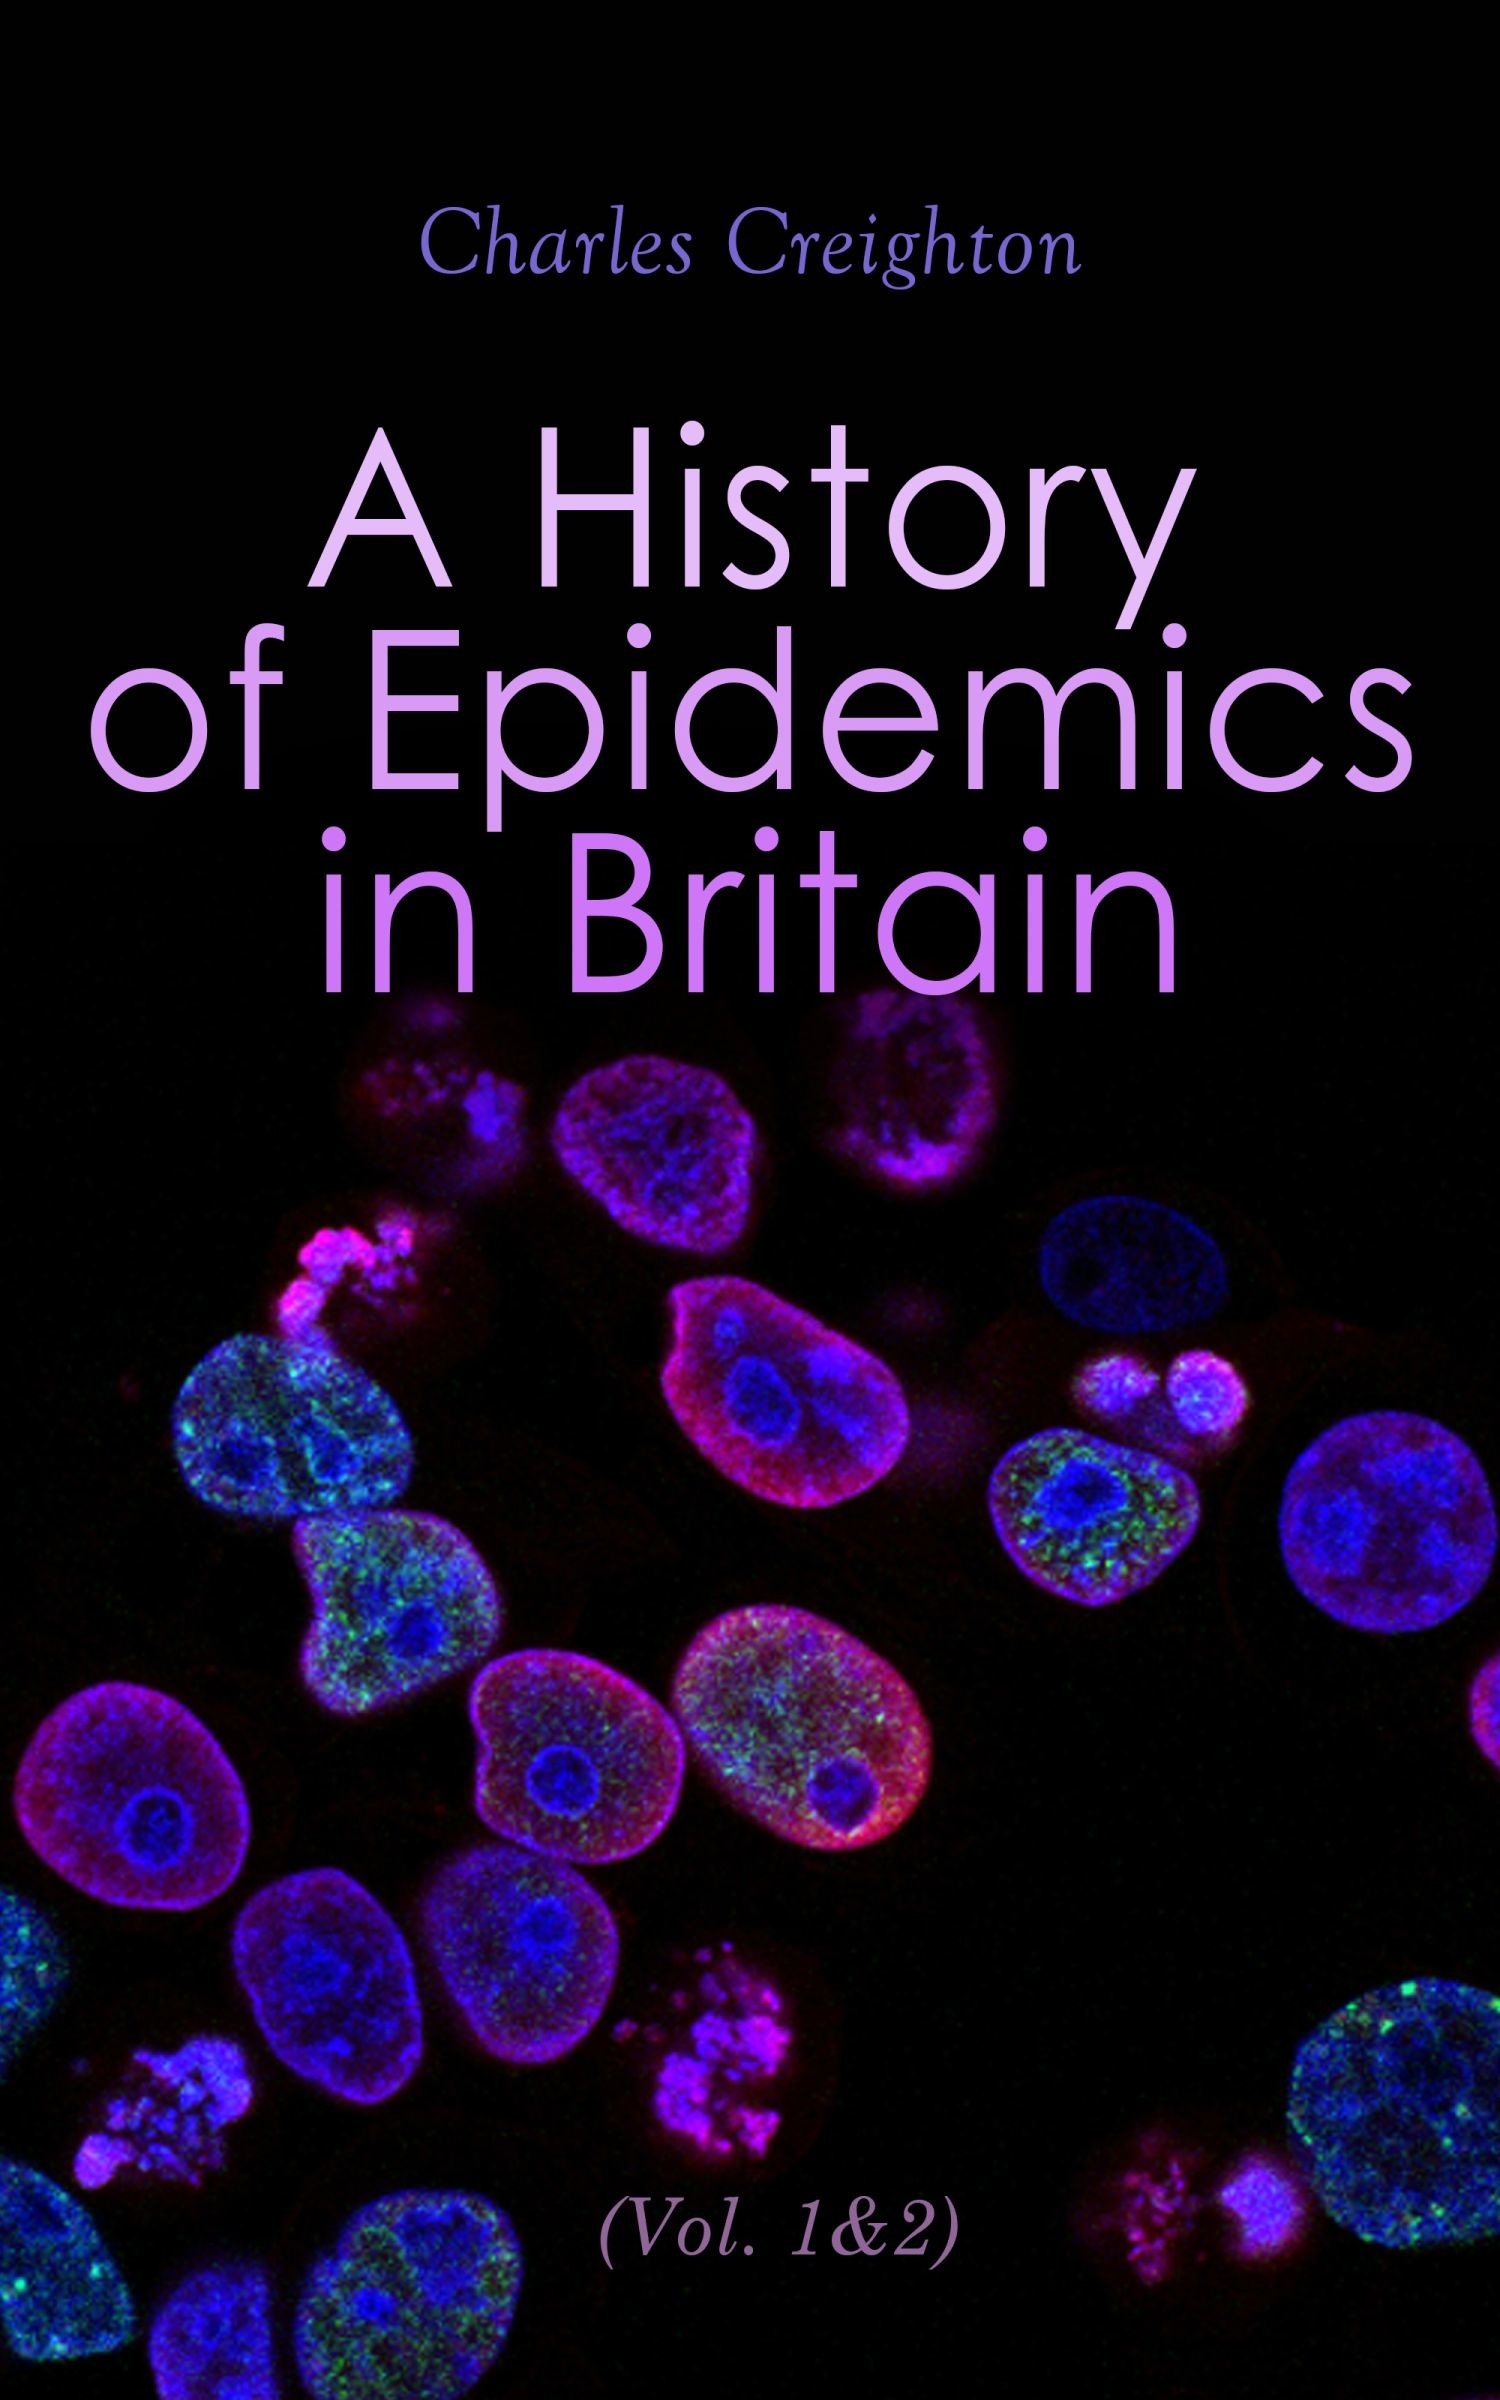 A History of Epidemics in Britain (Vol. 1&2)